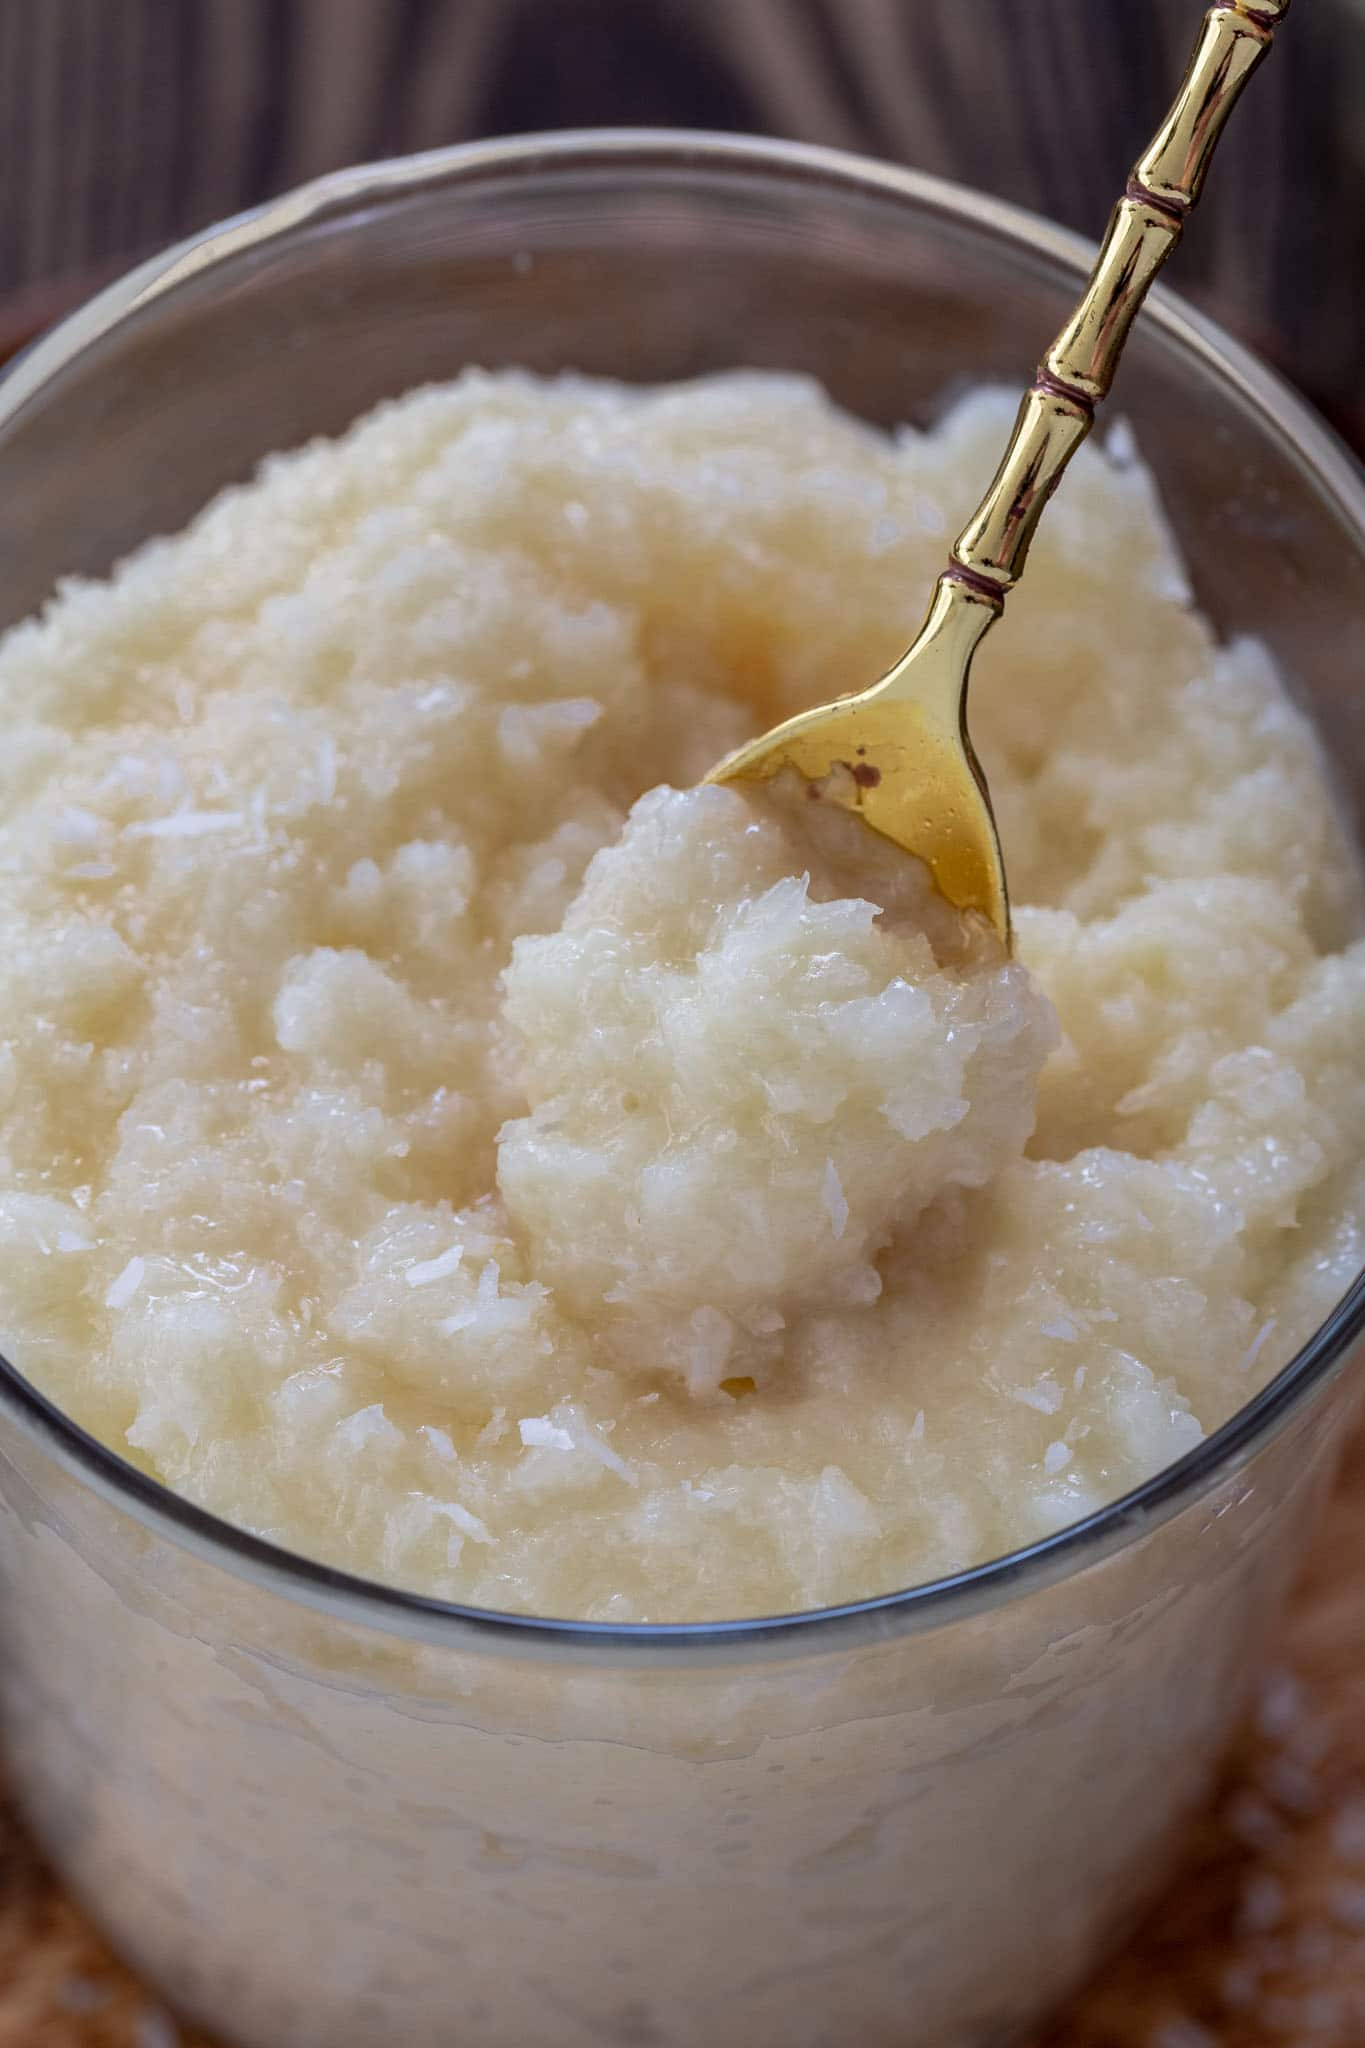 A close up of a spoonful of coconut pudding.